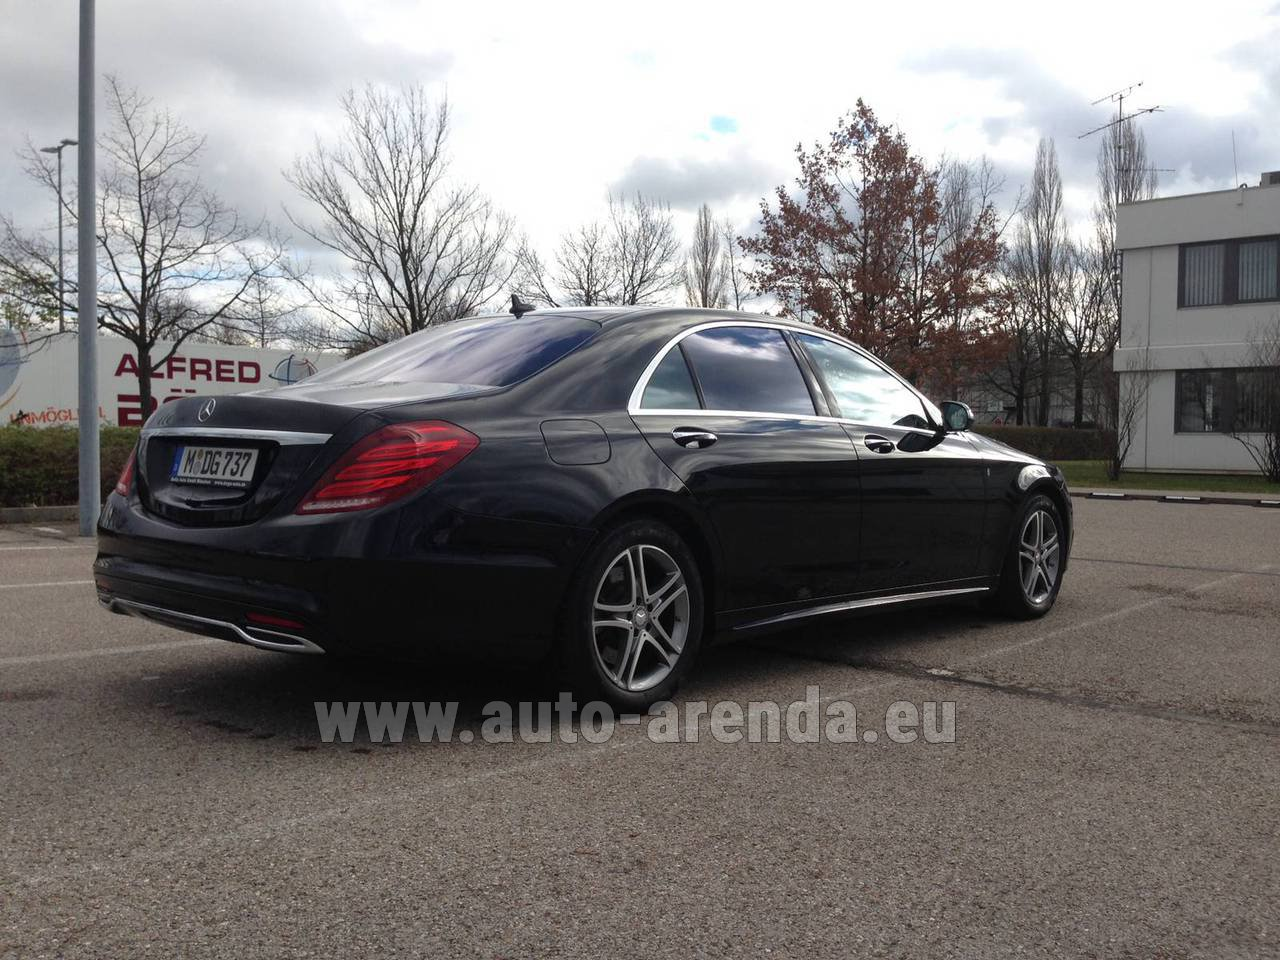 Marbella mercedes benz s 350 long diesel 4x4 amg rental for Mercedes benz rental prices